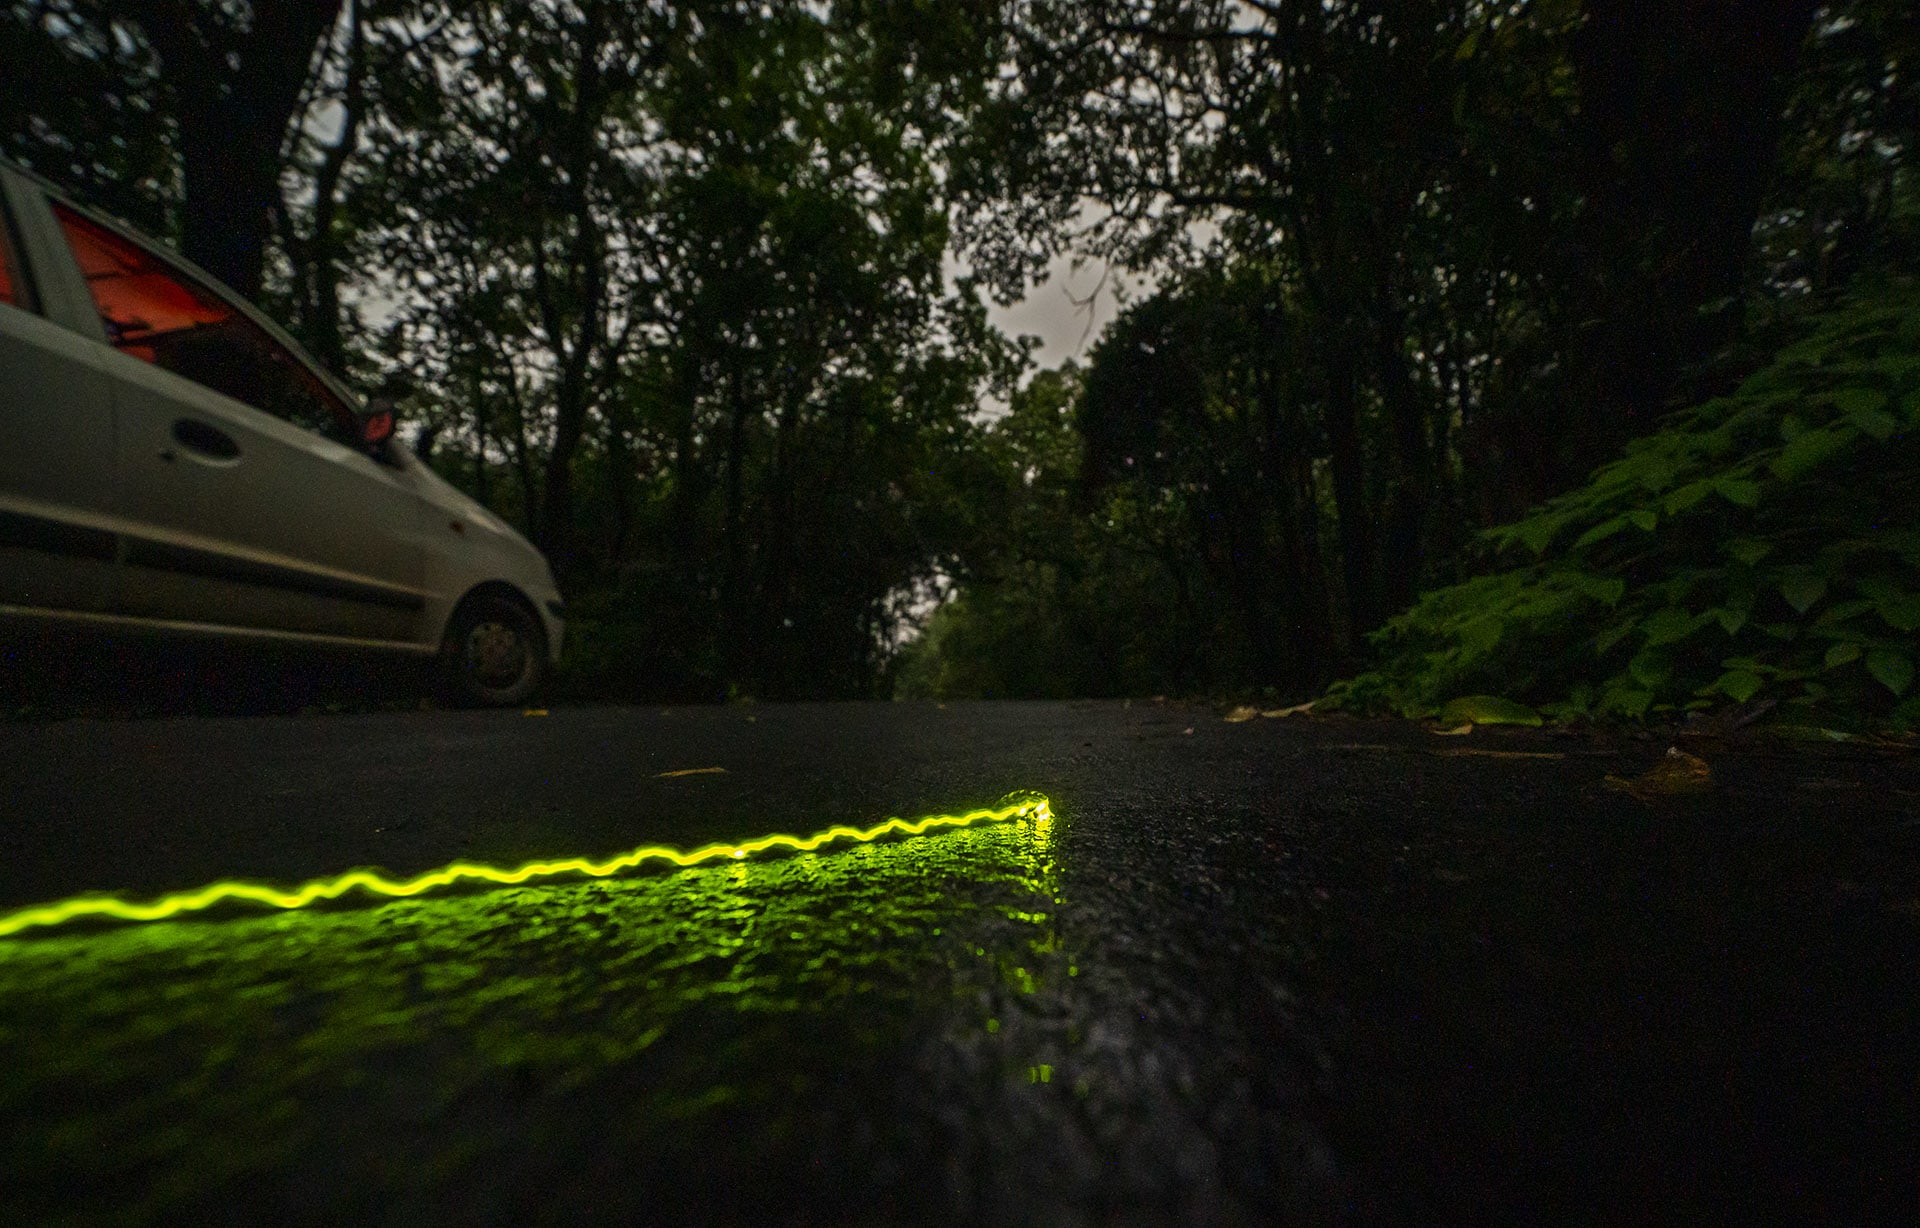 The wingless, larvae-like females or larvae of a few bioluminescent beetles also glow in the night and are commonly called glow worms. They are terrestrial, mostly seen on low bushes or on ground and flash light to attract a mate. A few are known to feed on snails and thus commonly seen during the monsoon. One such glow worm was seen crossing the road during one of the night trails. A little care, a little mindfulness — can go a long way in protecting fascinating species like this in a habitat like Amboli.